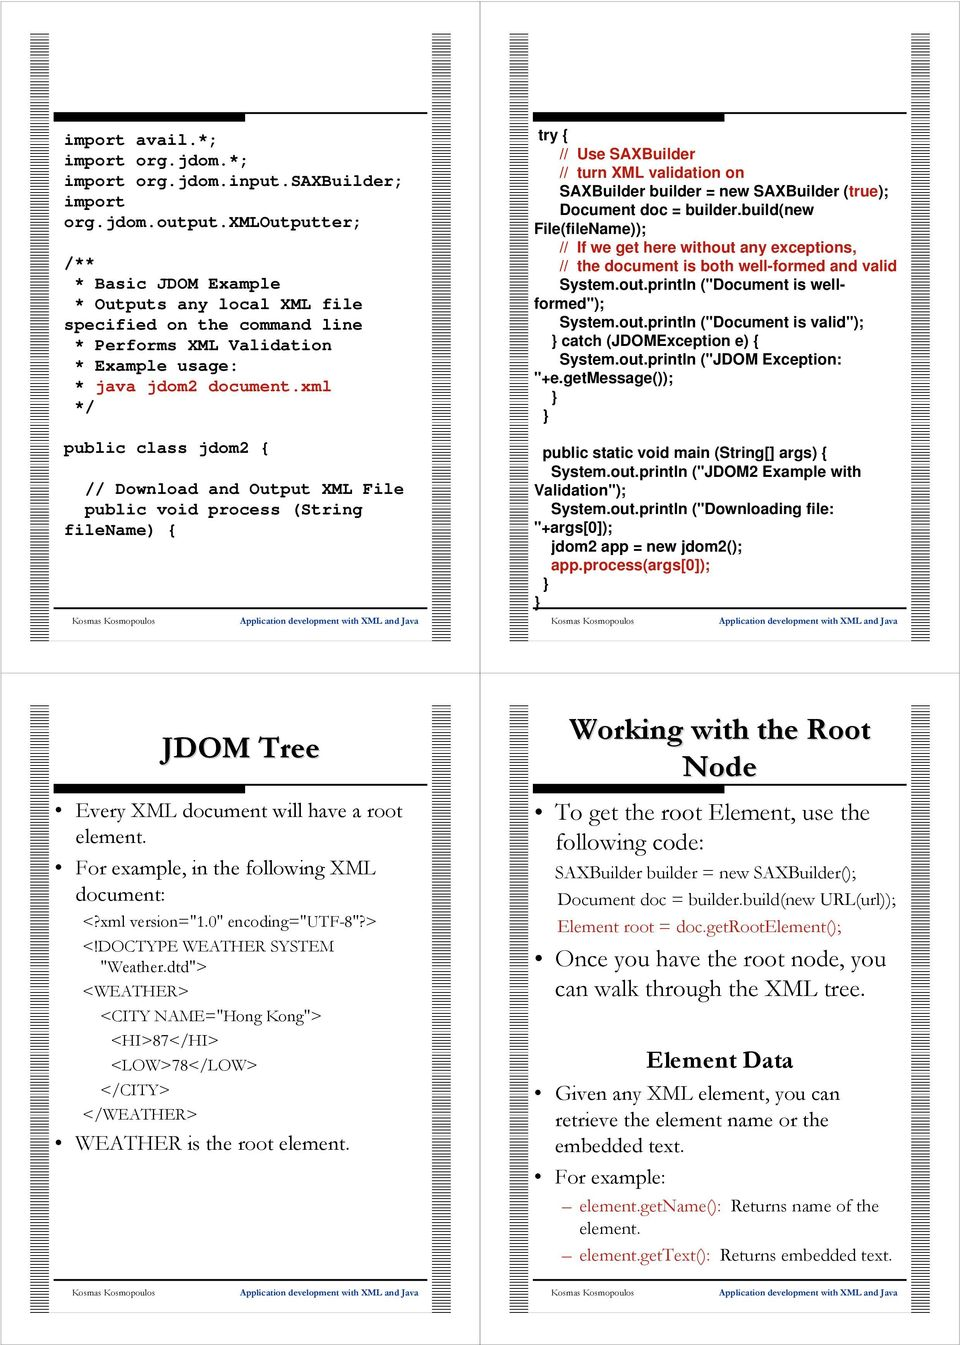 JDOM Overview  Application development with XML and Java